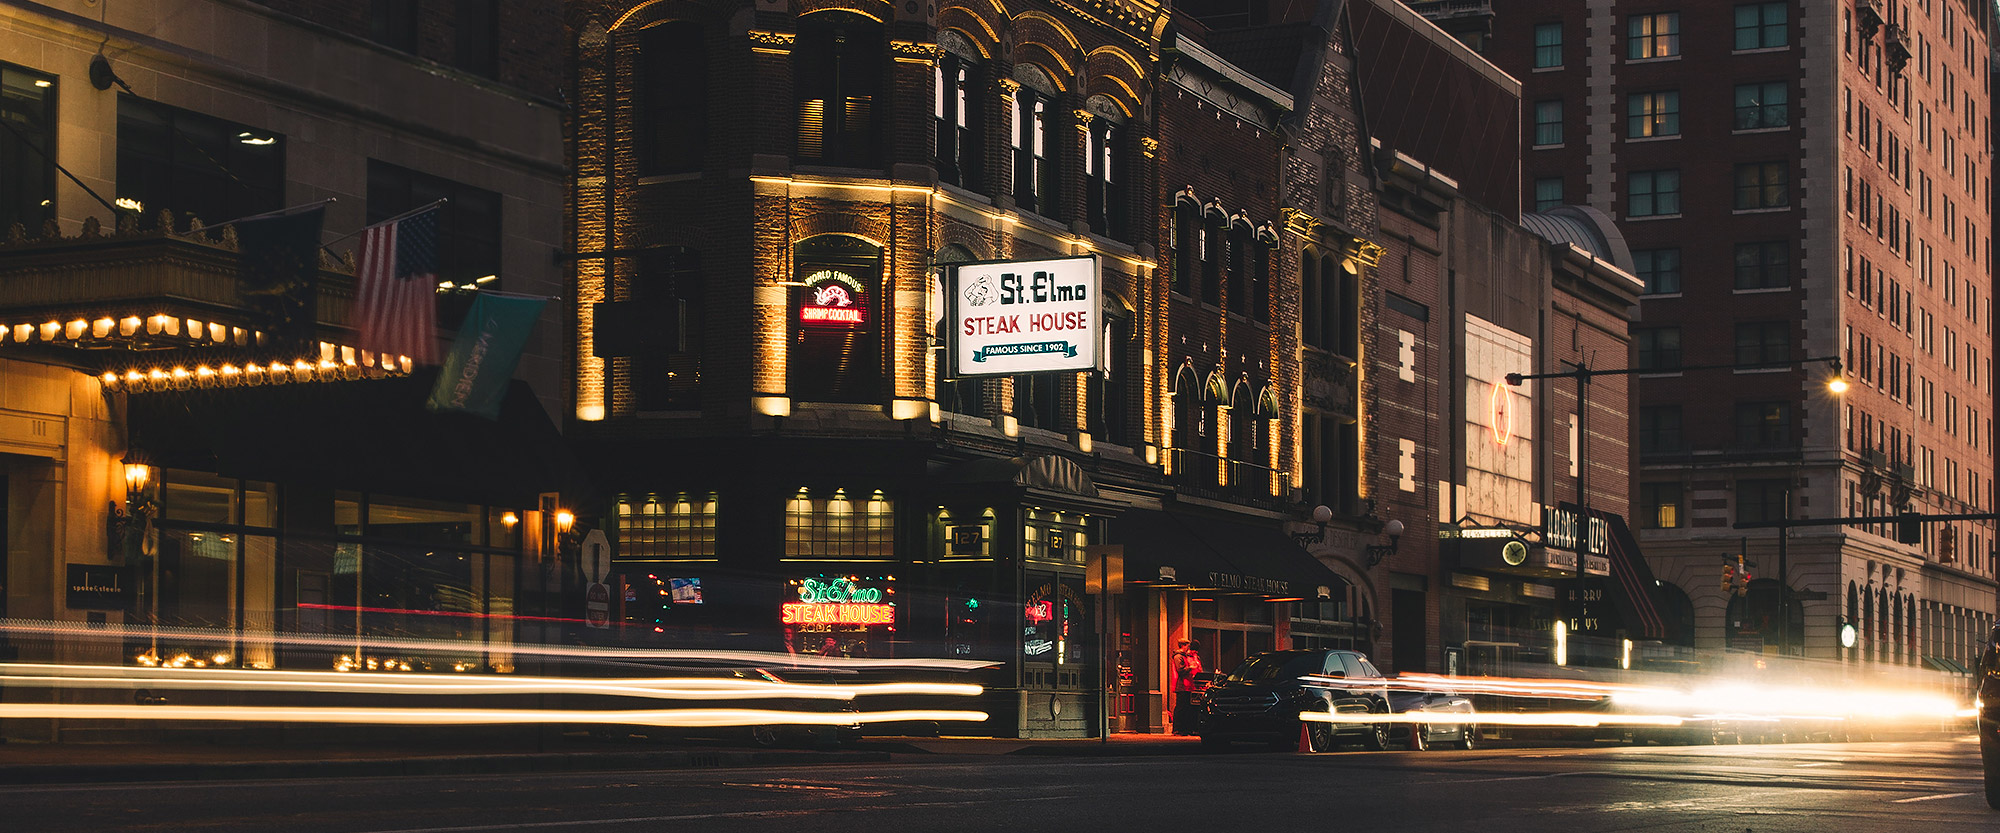 St. Elmo Steak House Exterior at night